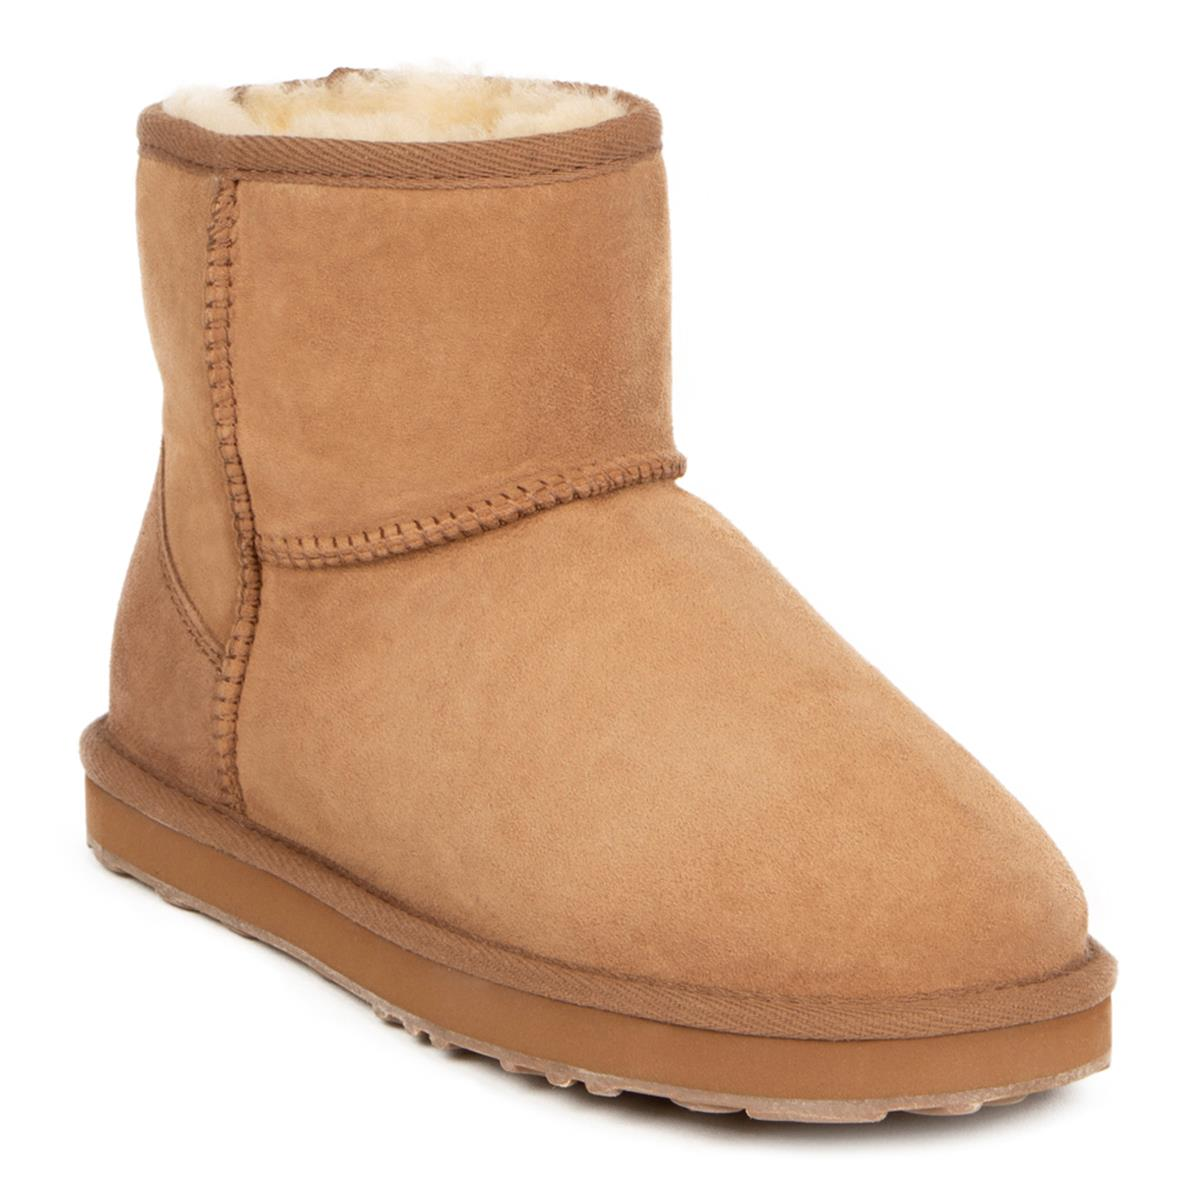 Ugg boots for baby girls